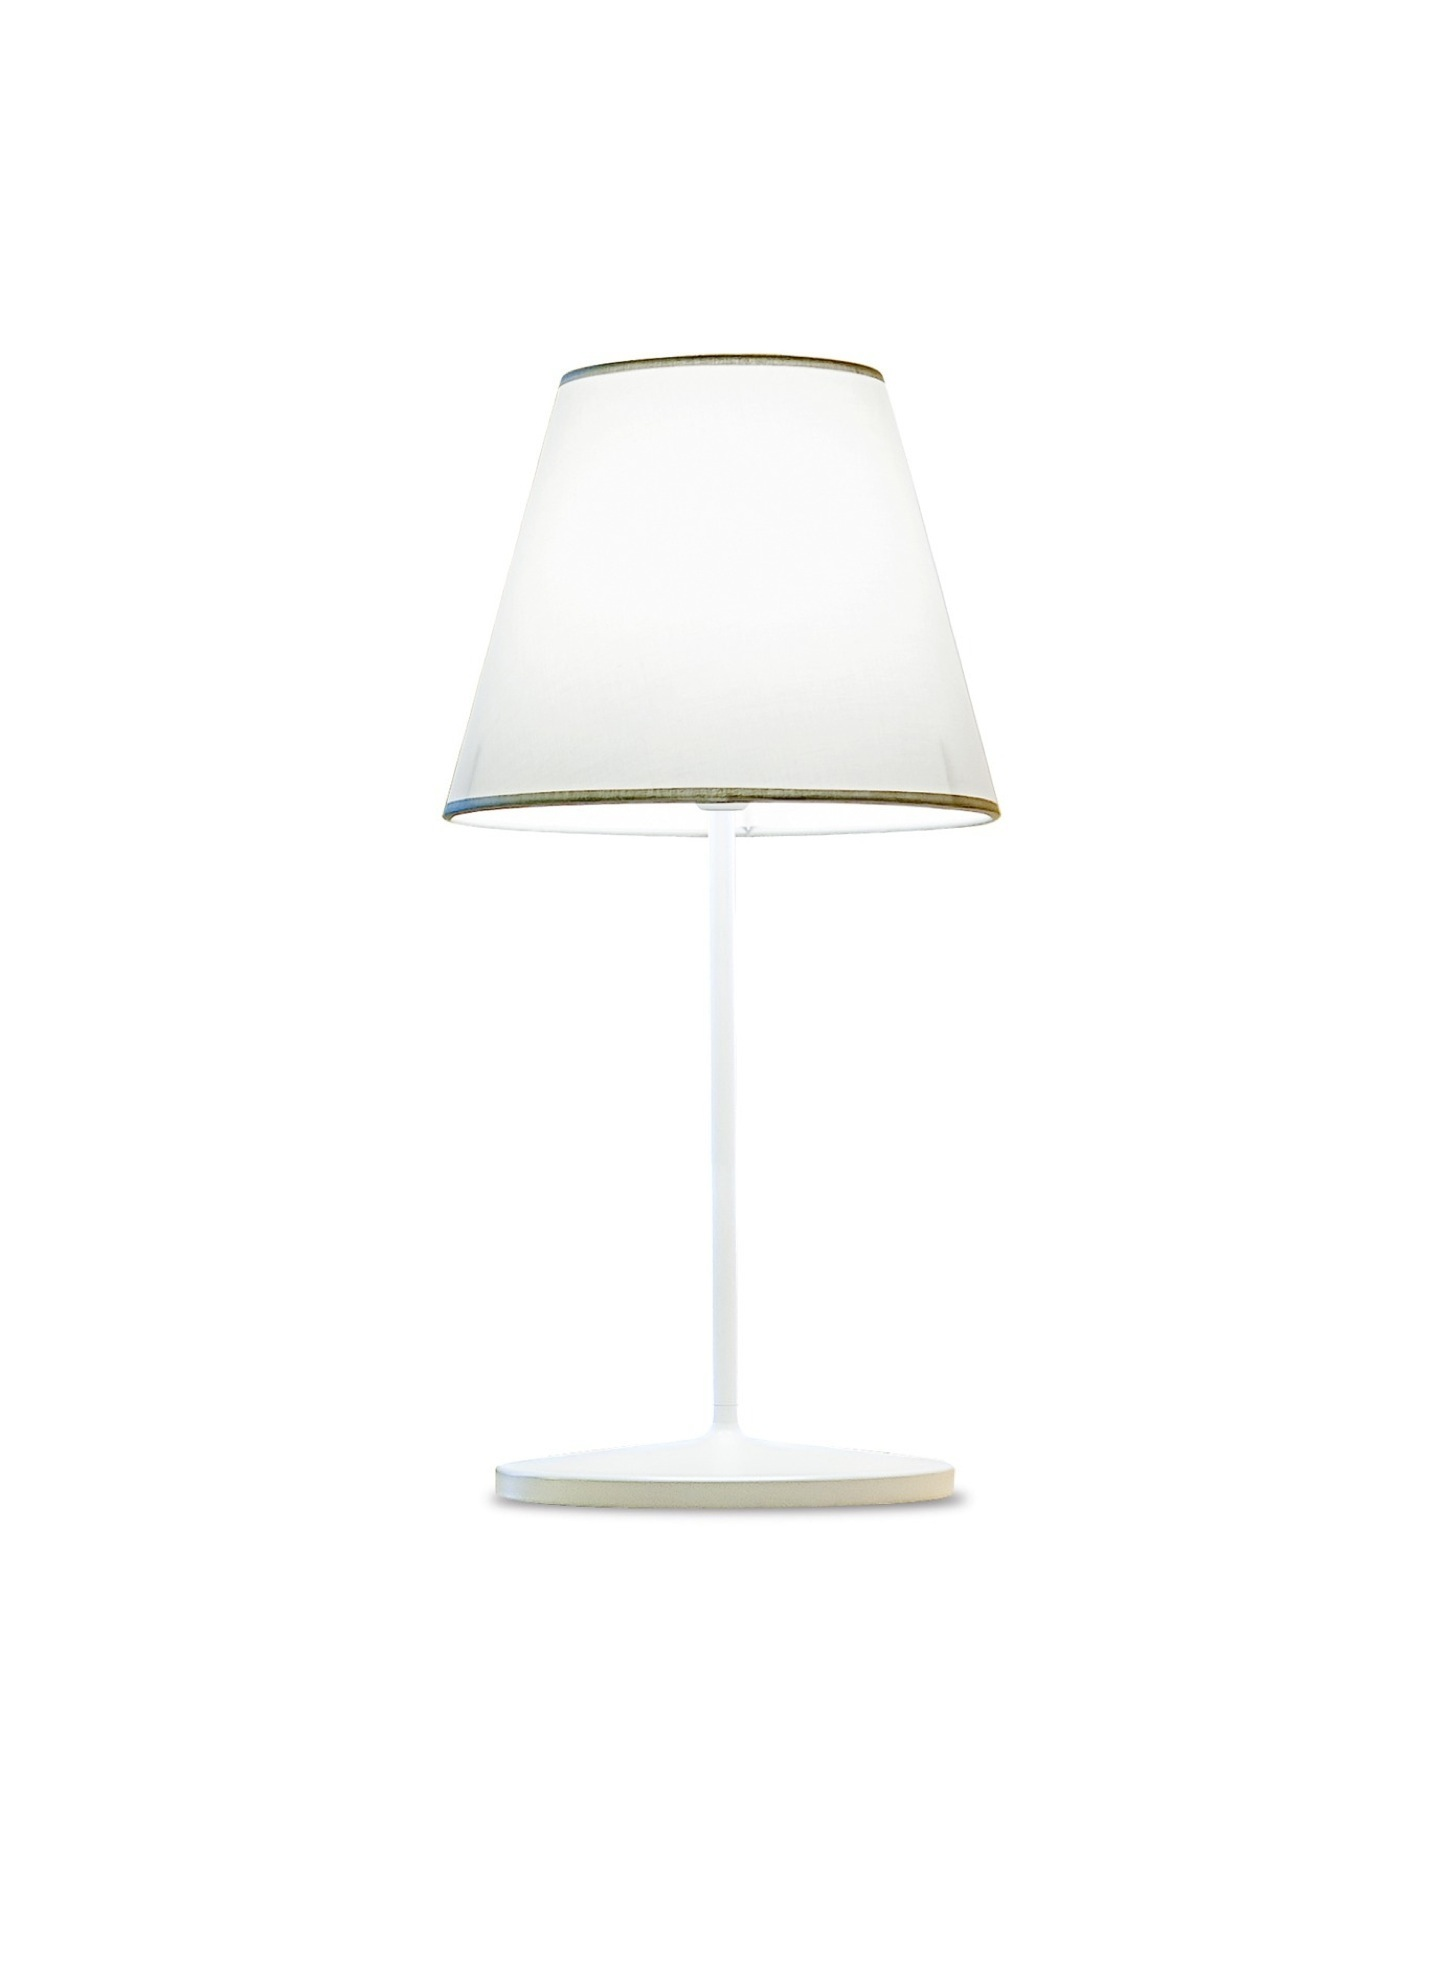 Cotonette of Table Lamp Bianco/Grigio